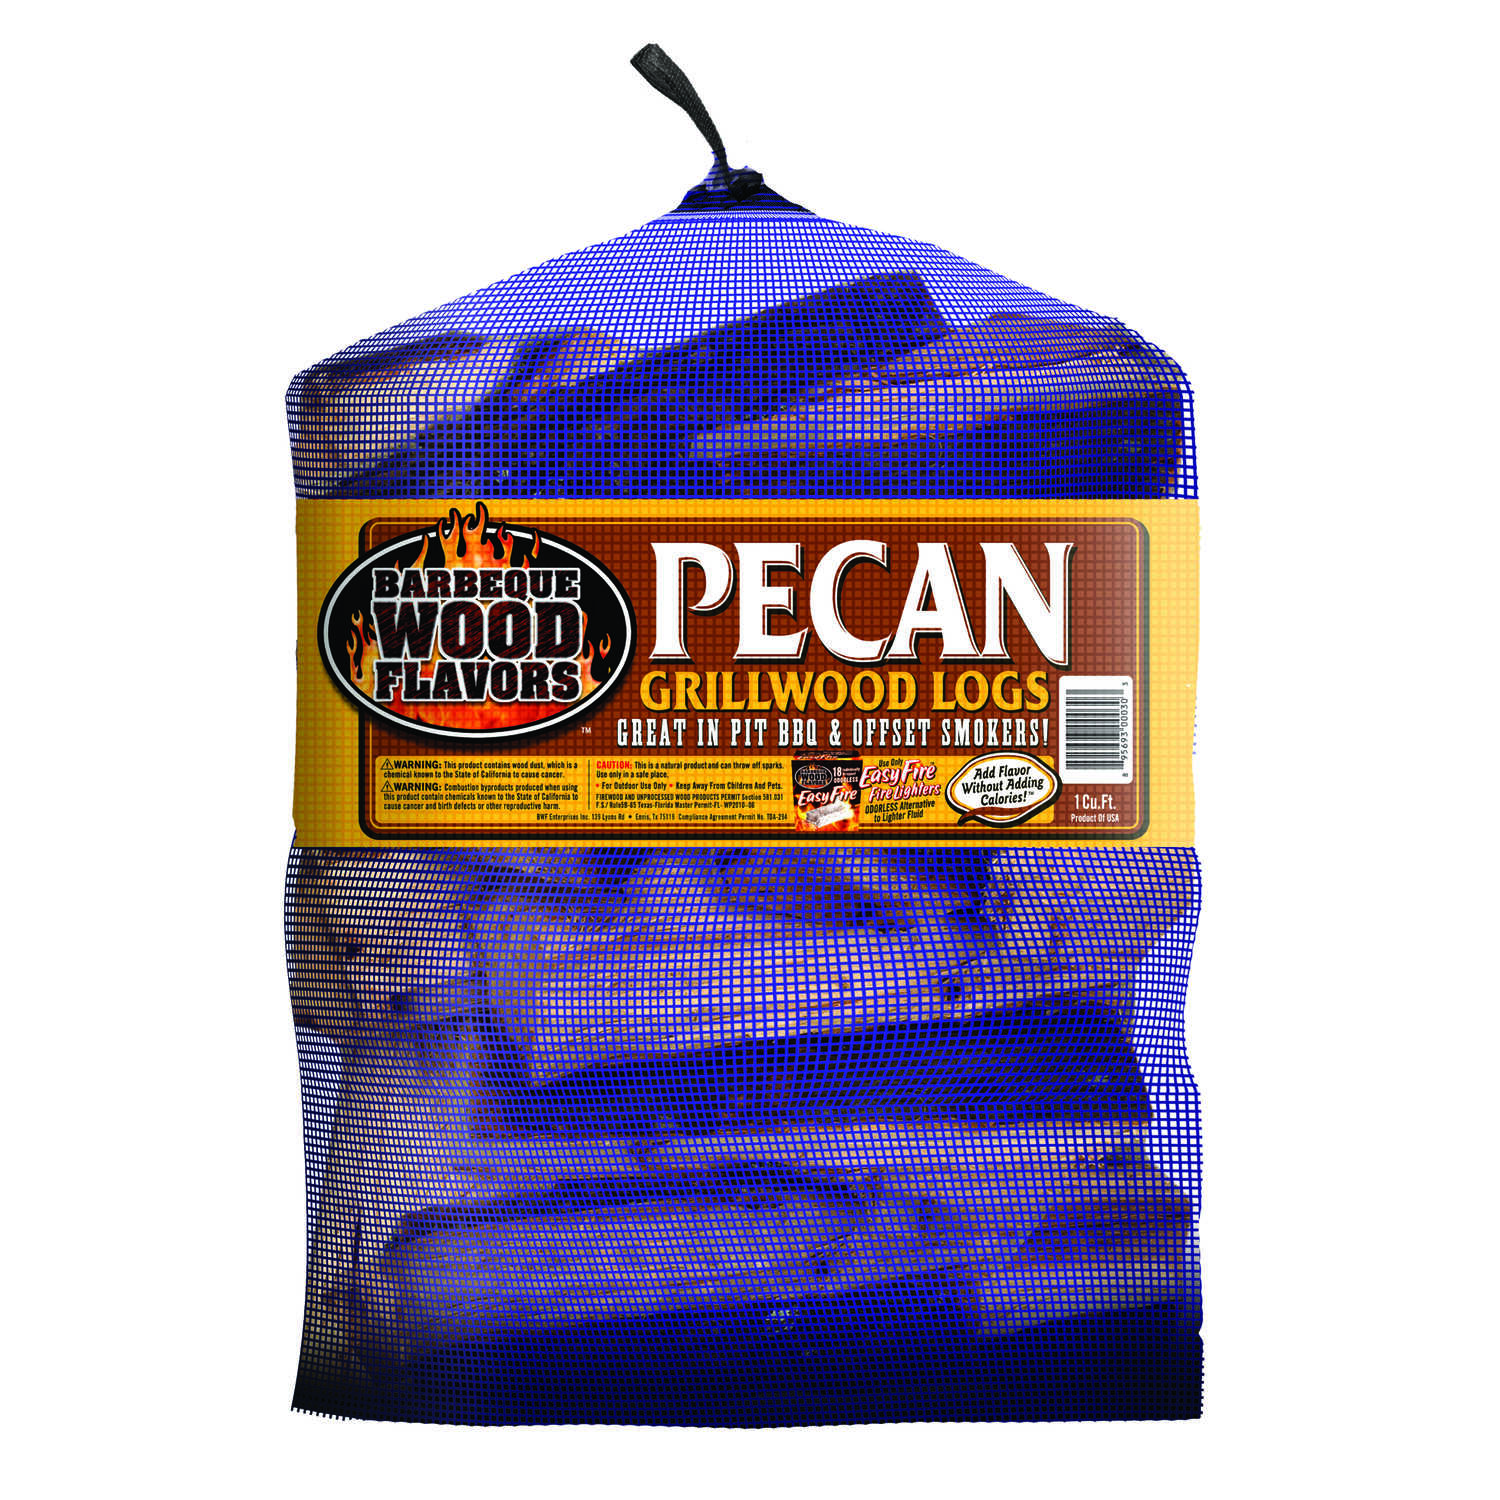 Barbeque Wood Flavors  Pecan  Cooking Logs  1 cu. ft.